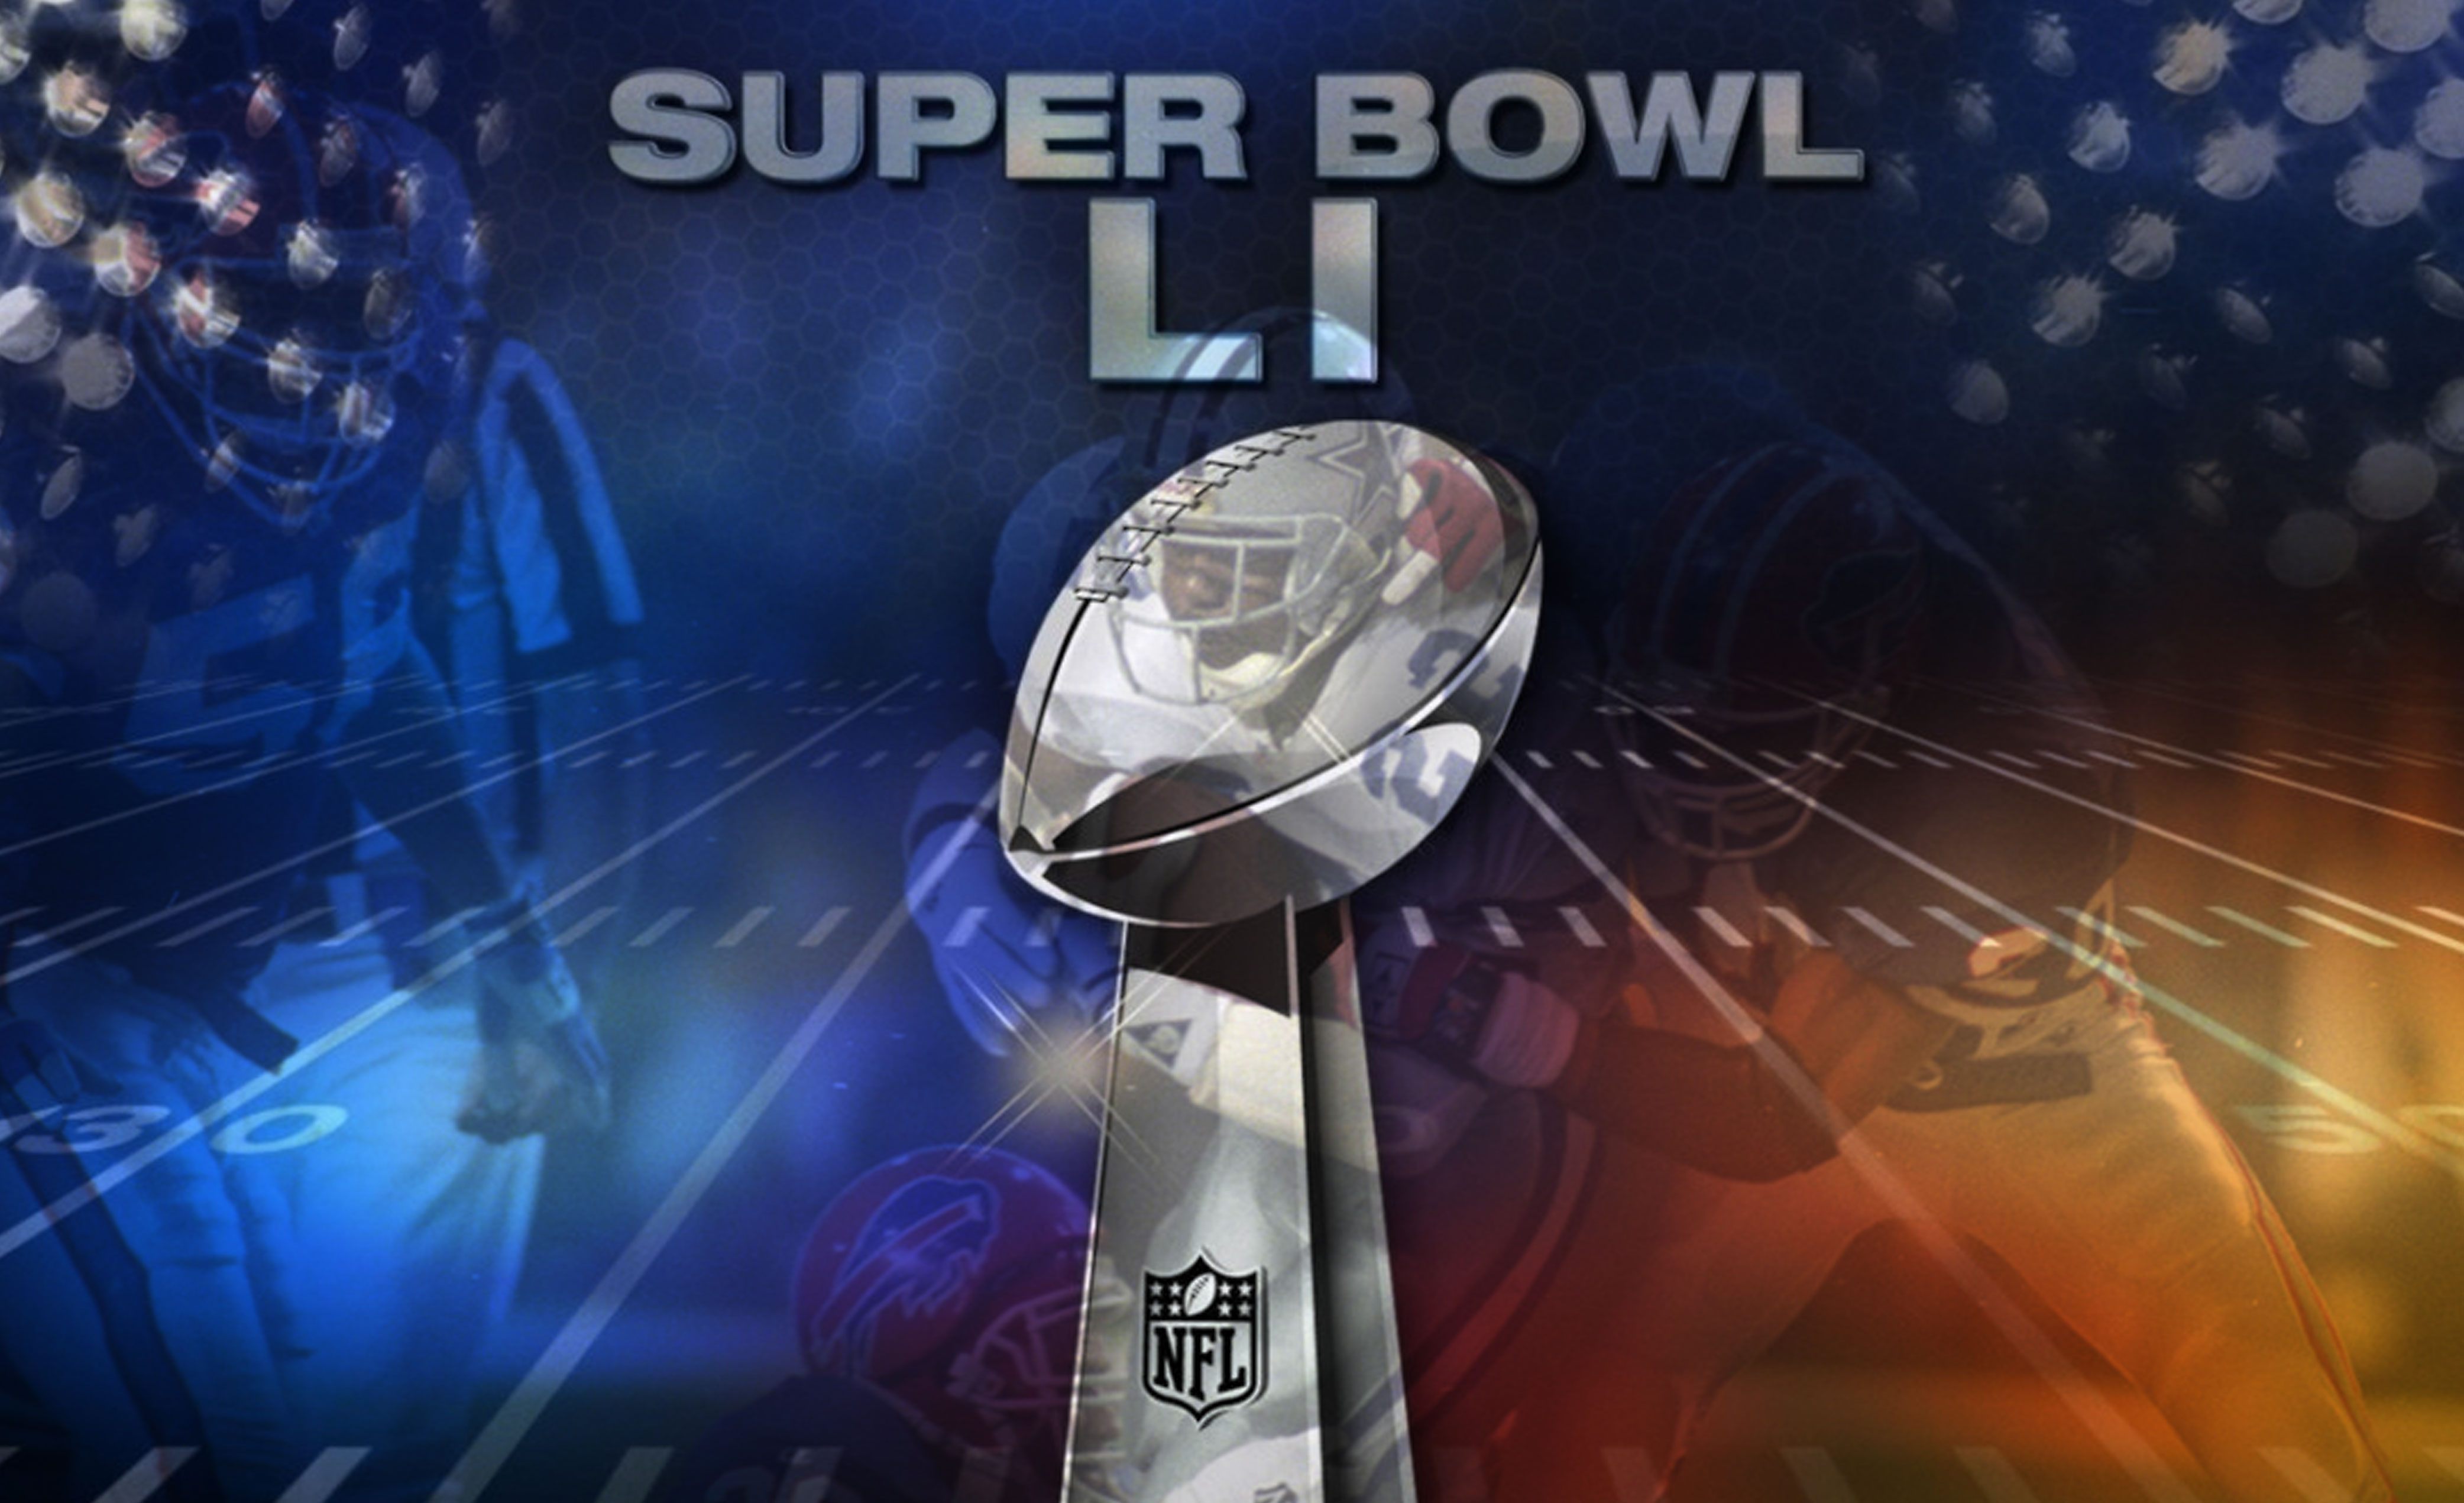 Strategie marketing? Fate come per il Super Bowl